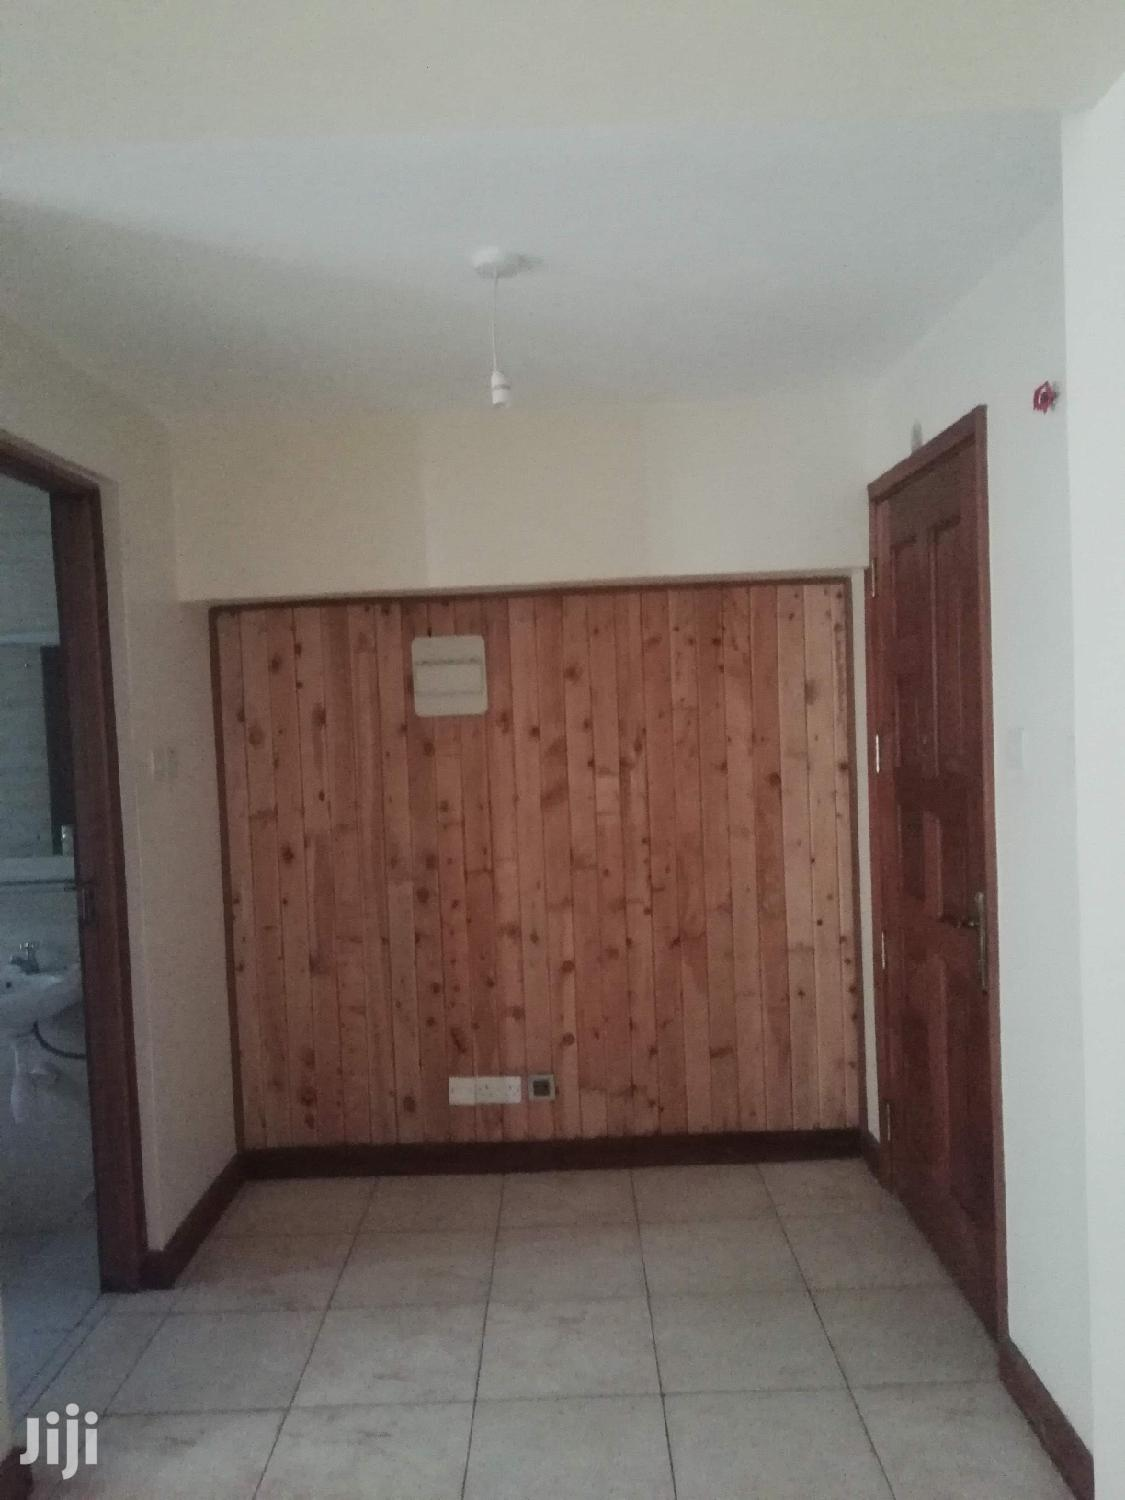 Property World,1br Apartment With Pool,Gym,Lift And Secure | Houses & Apartments For Rent for sale in Lavington, Nairobi, Kenya